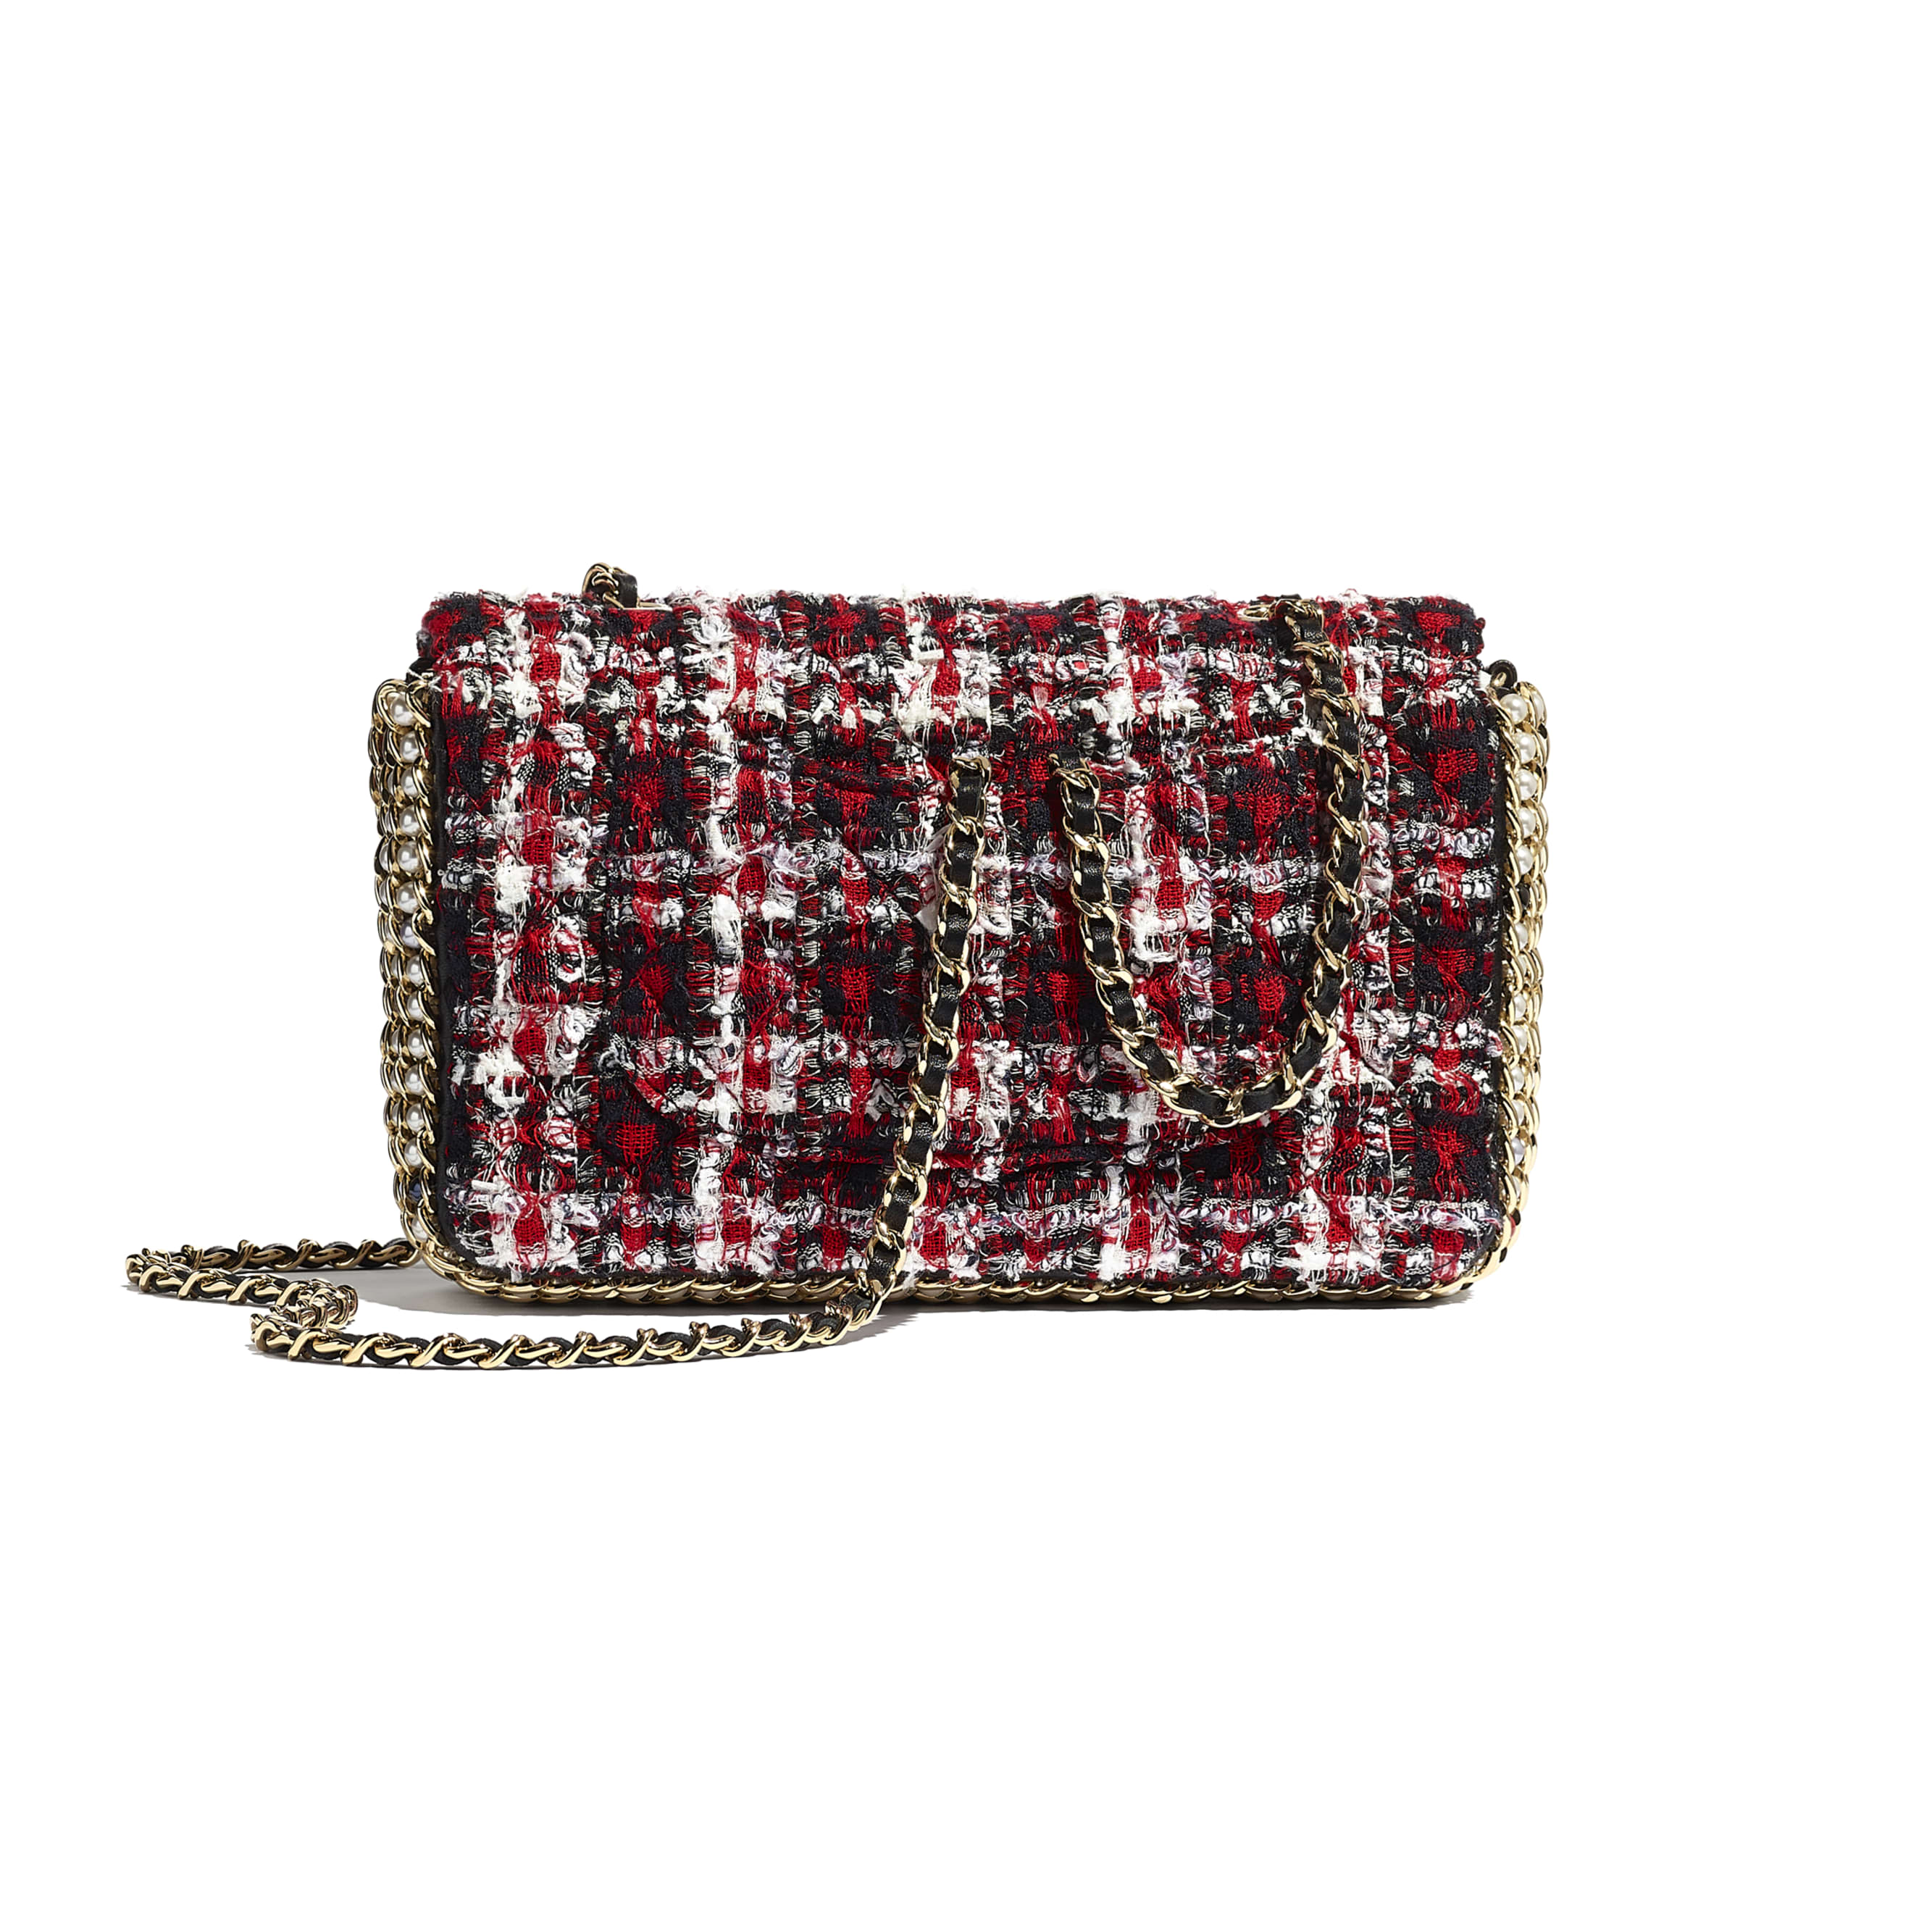 Flap Bag - Red, Black & White - Tweed, Imitation Pearls & Gold-Tone Metal - Alternative view - see standard sized version